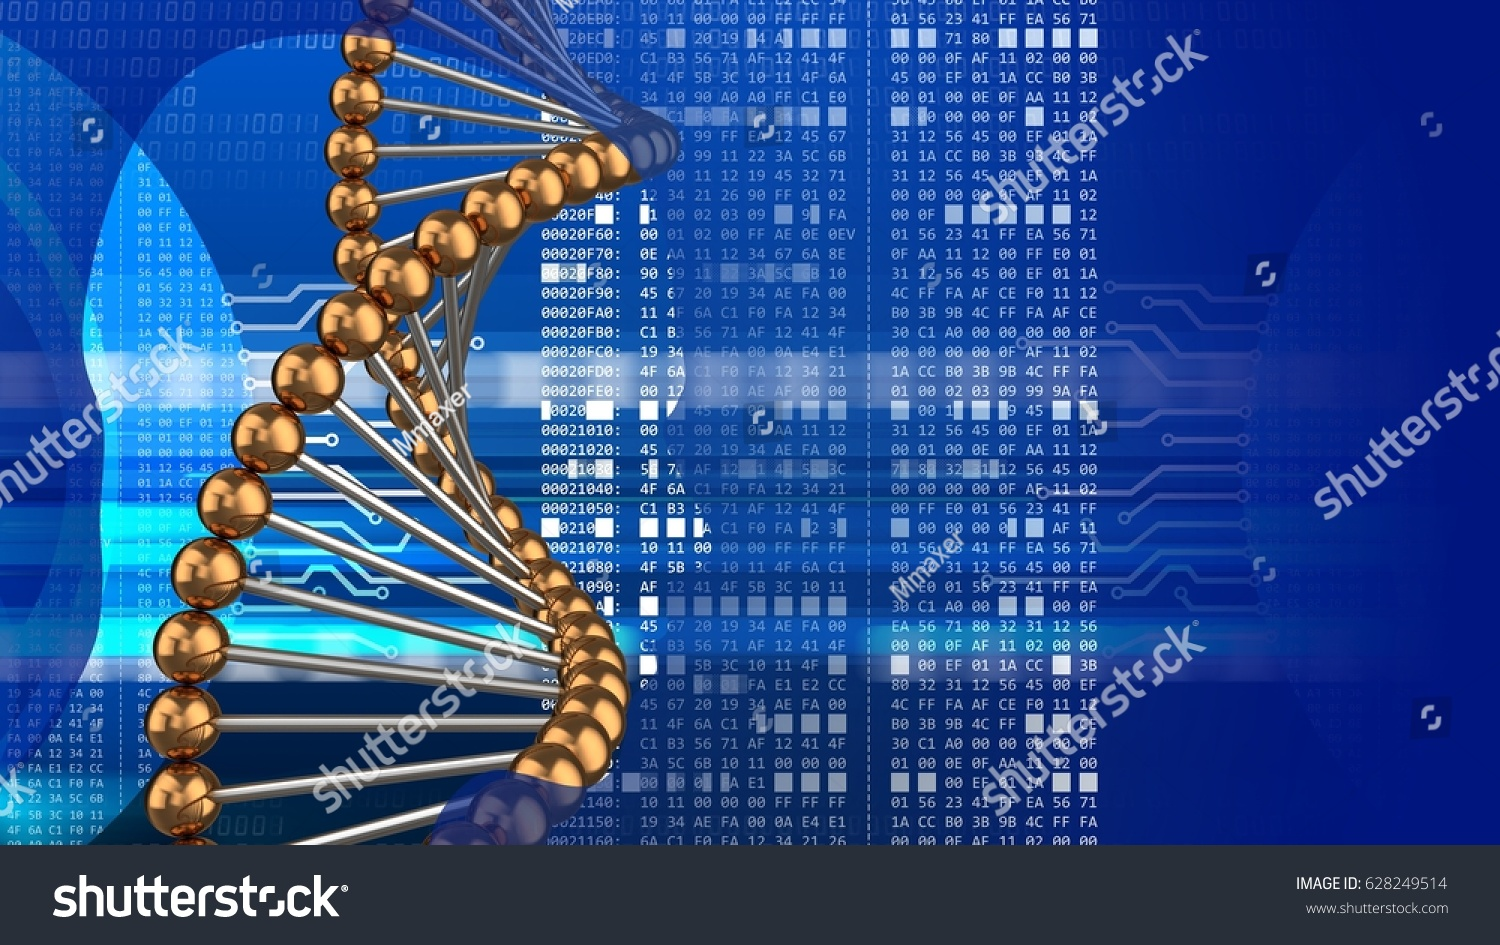 Abstract 3d digital background dna structure stock illustration abstract 3d digital background with dna structure head silhouette and hexadecimal code ccuart Image collections